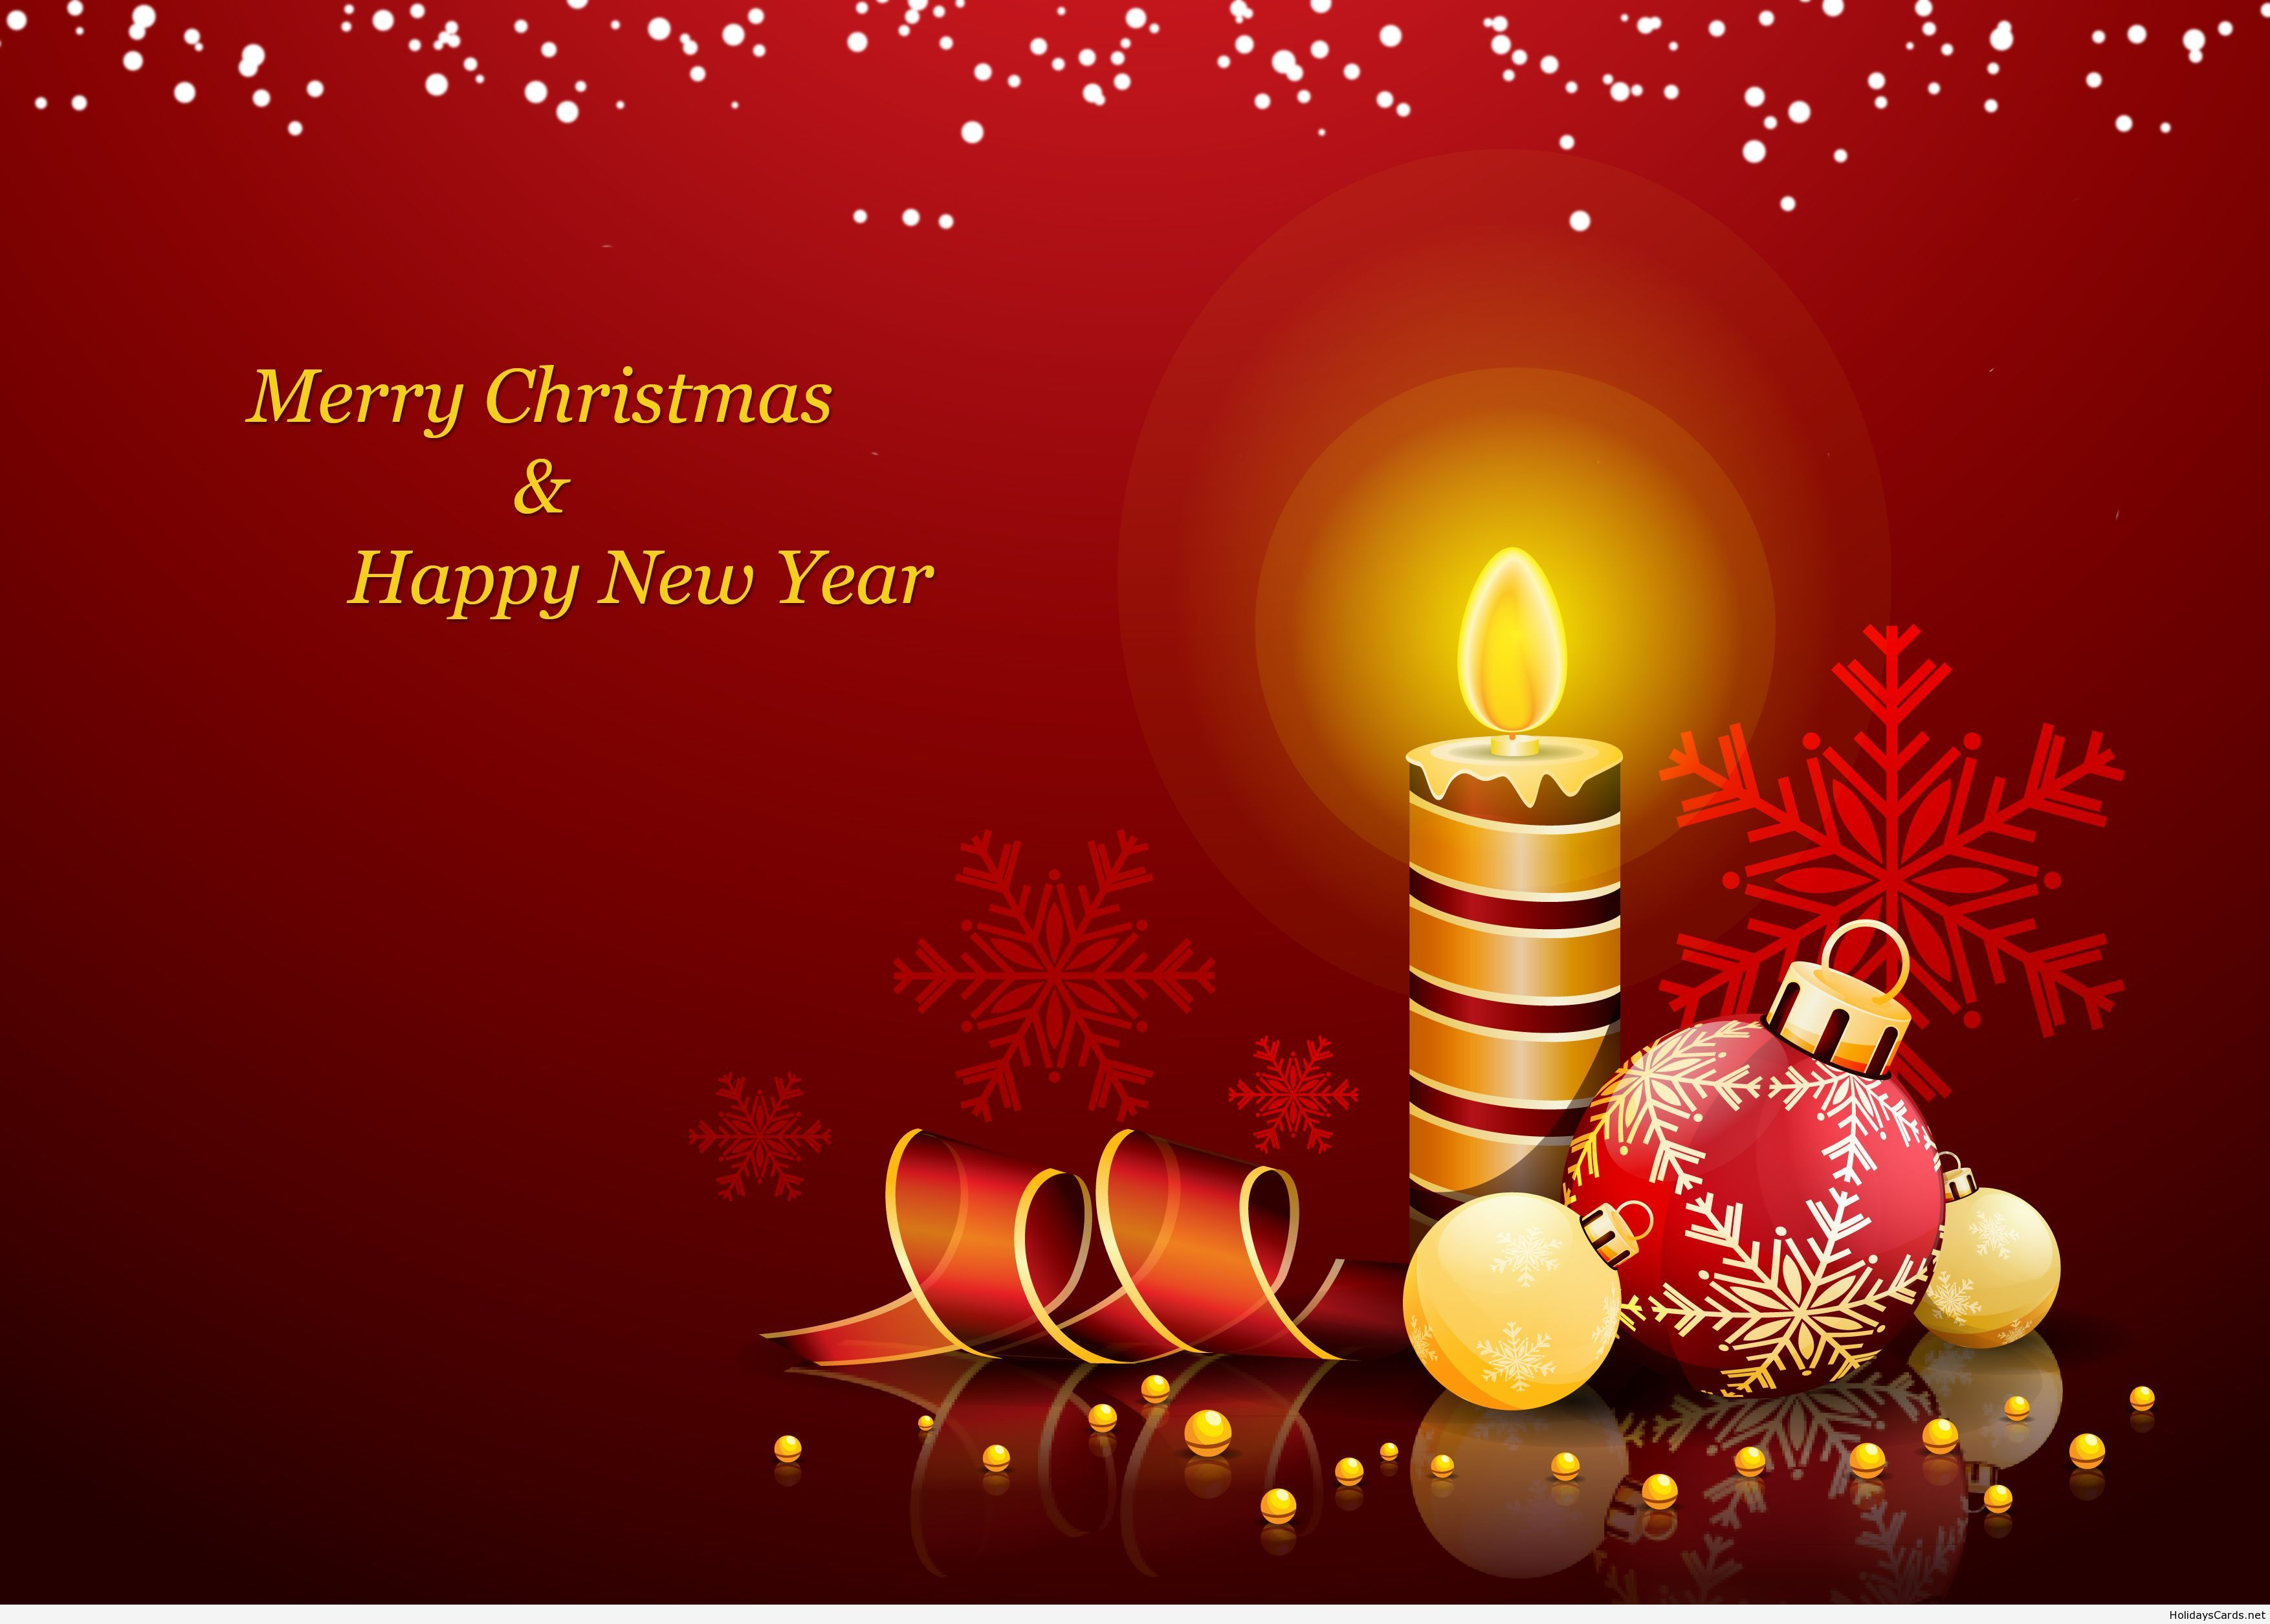 Merry Christmas And Happy New Year Wallpaper Happy New Year